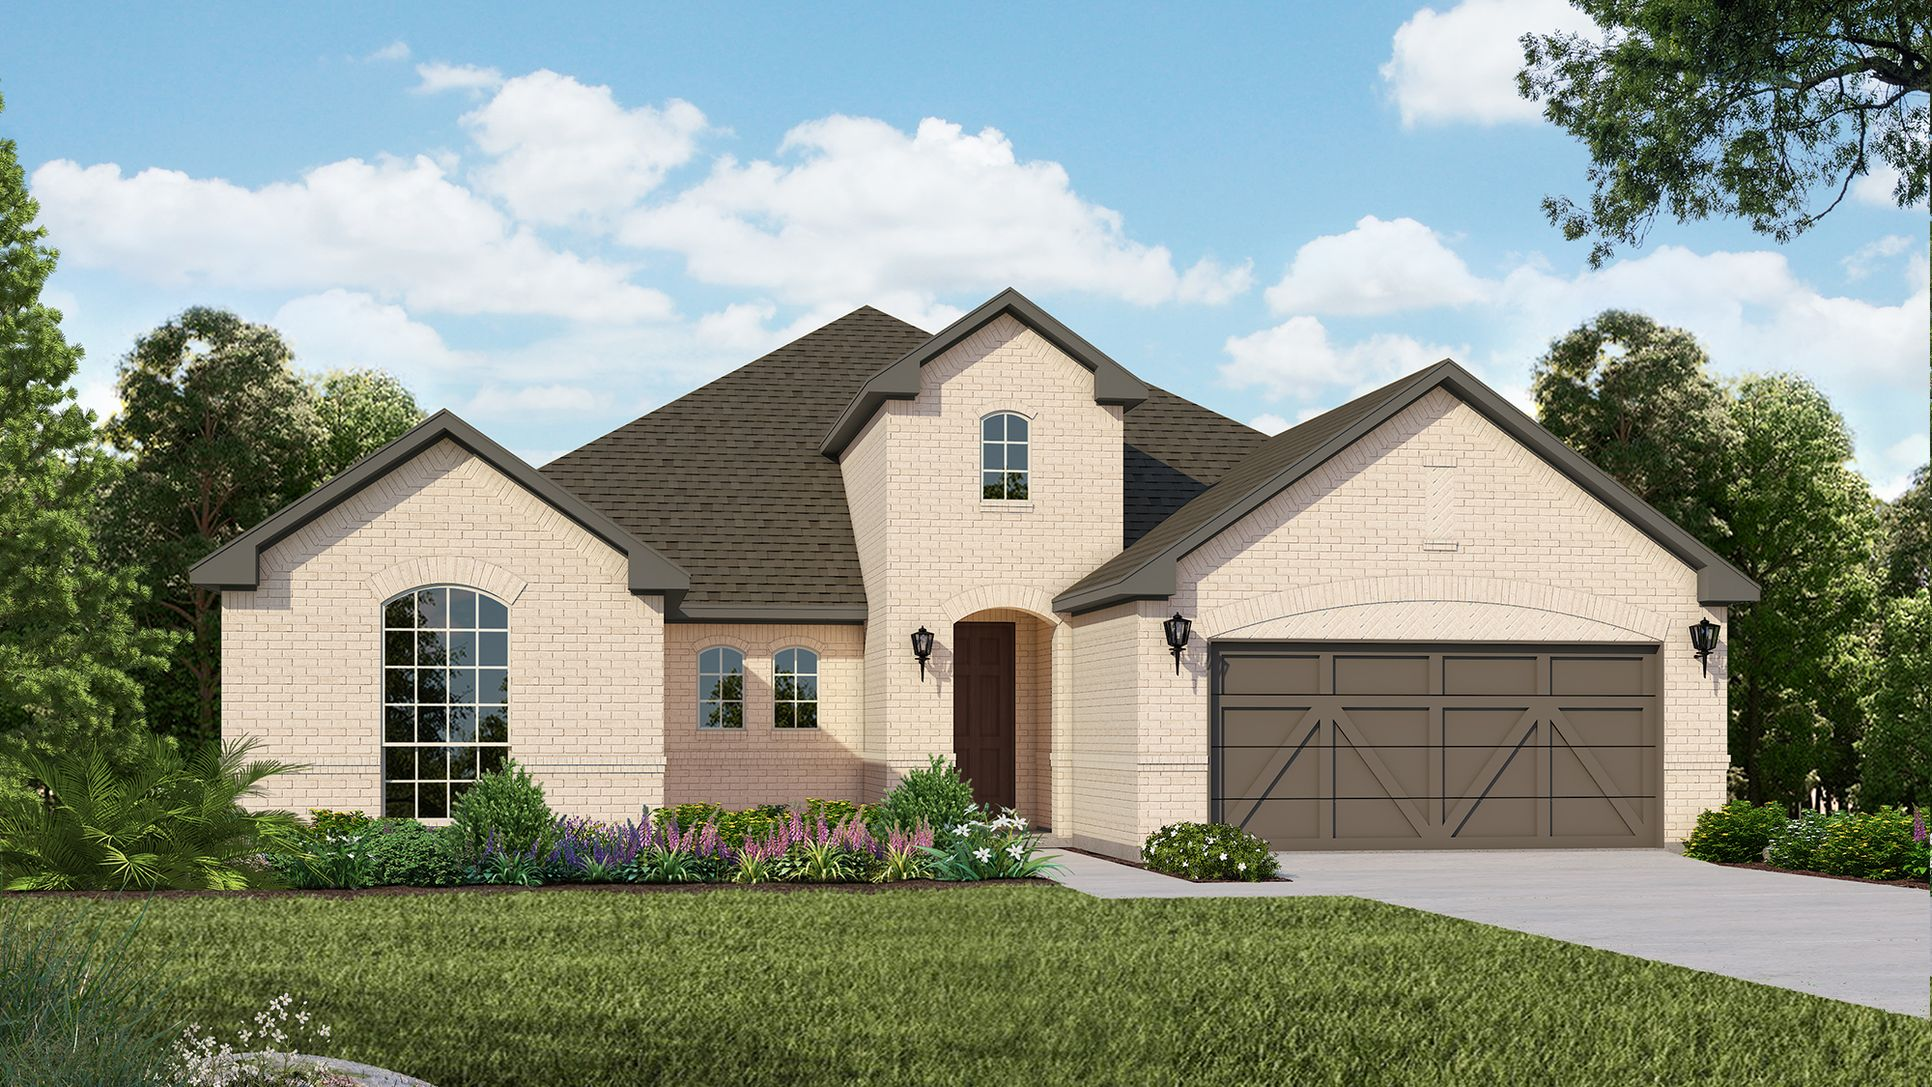 Exterior:Plan 1690 Elevation A by American Legend Homes